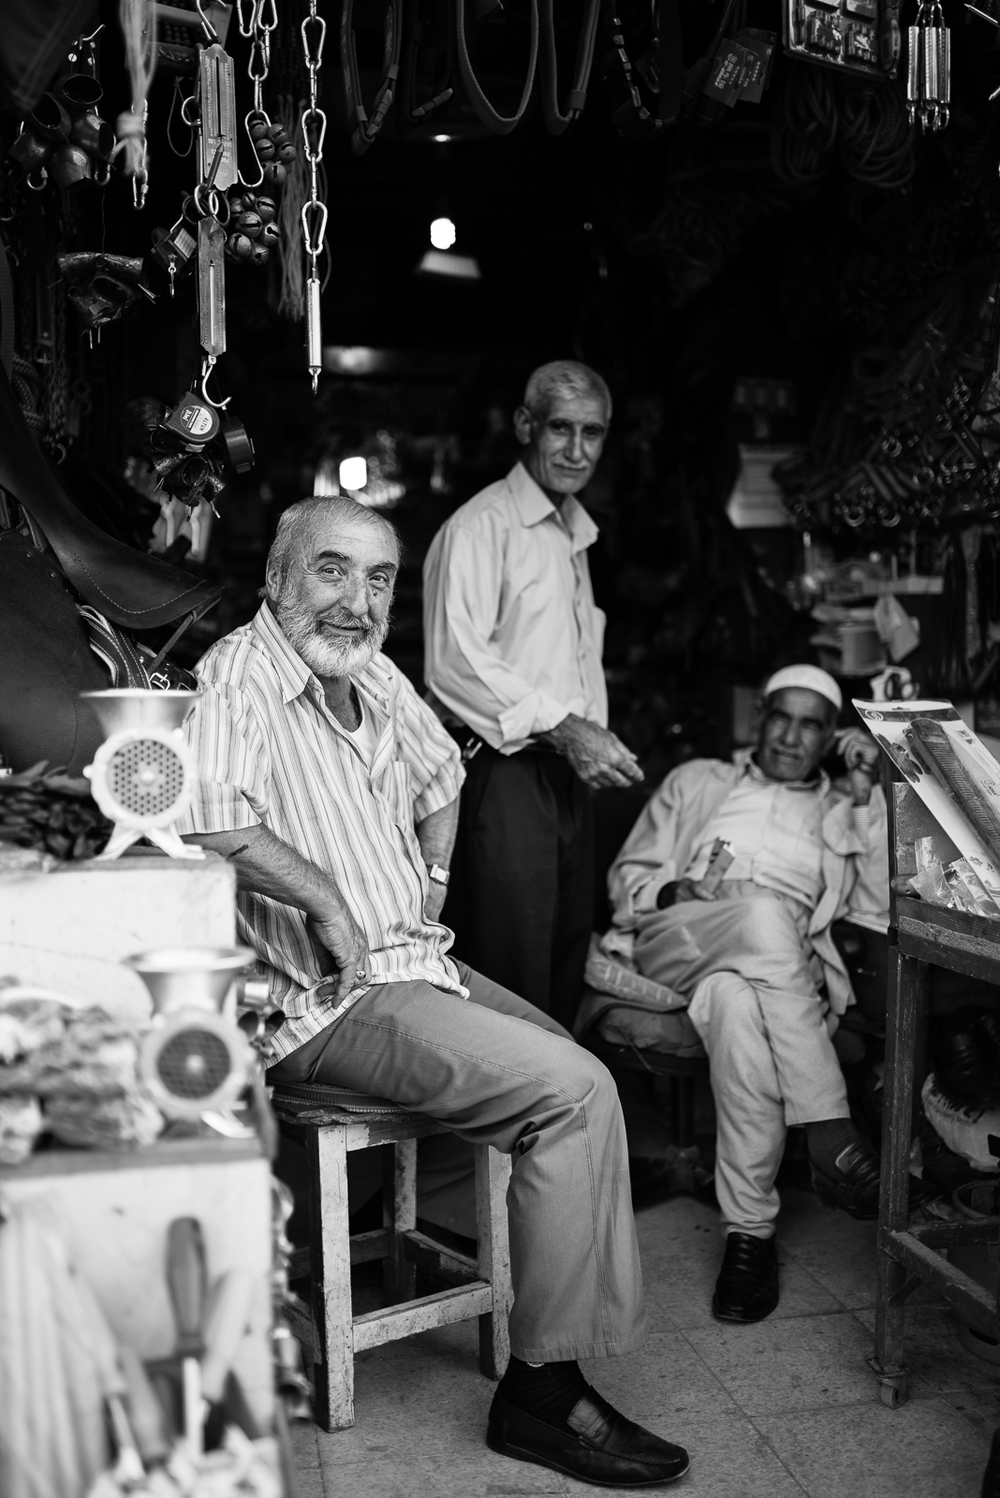 City life, Diyarbakir (Turkey)